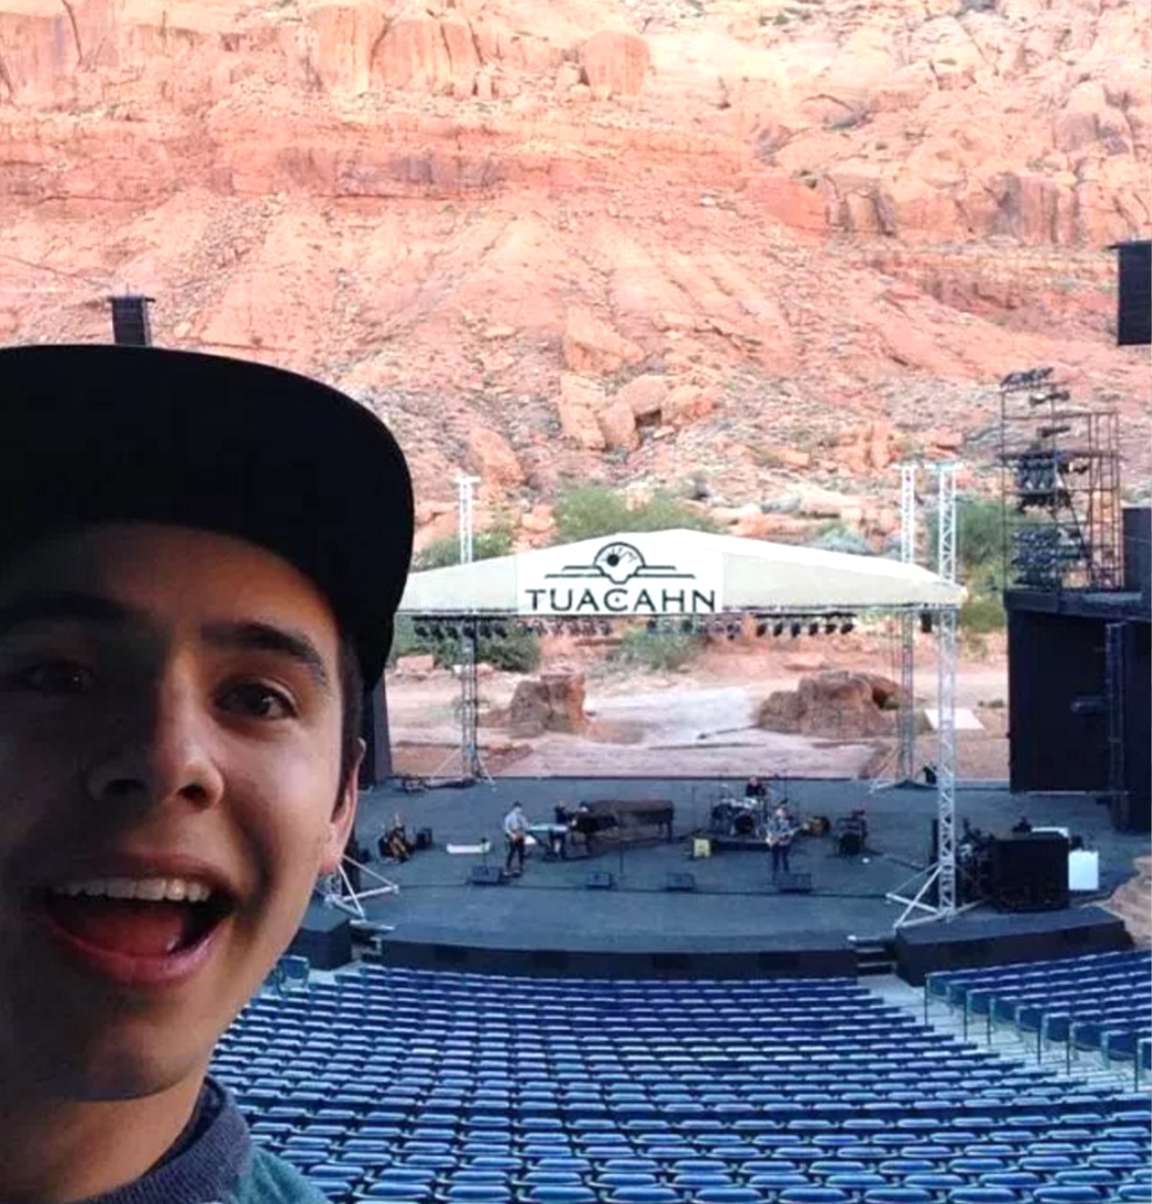 Tuacahn David ARchuleta showing us the amphitheater 2015